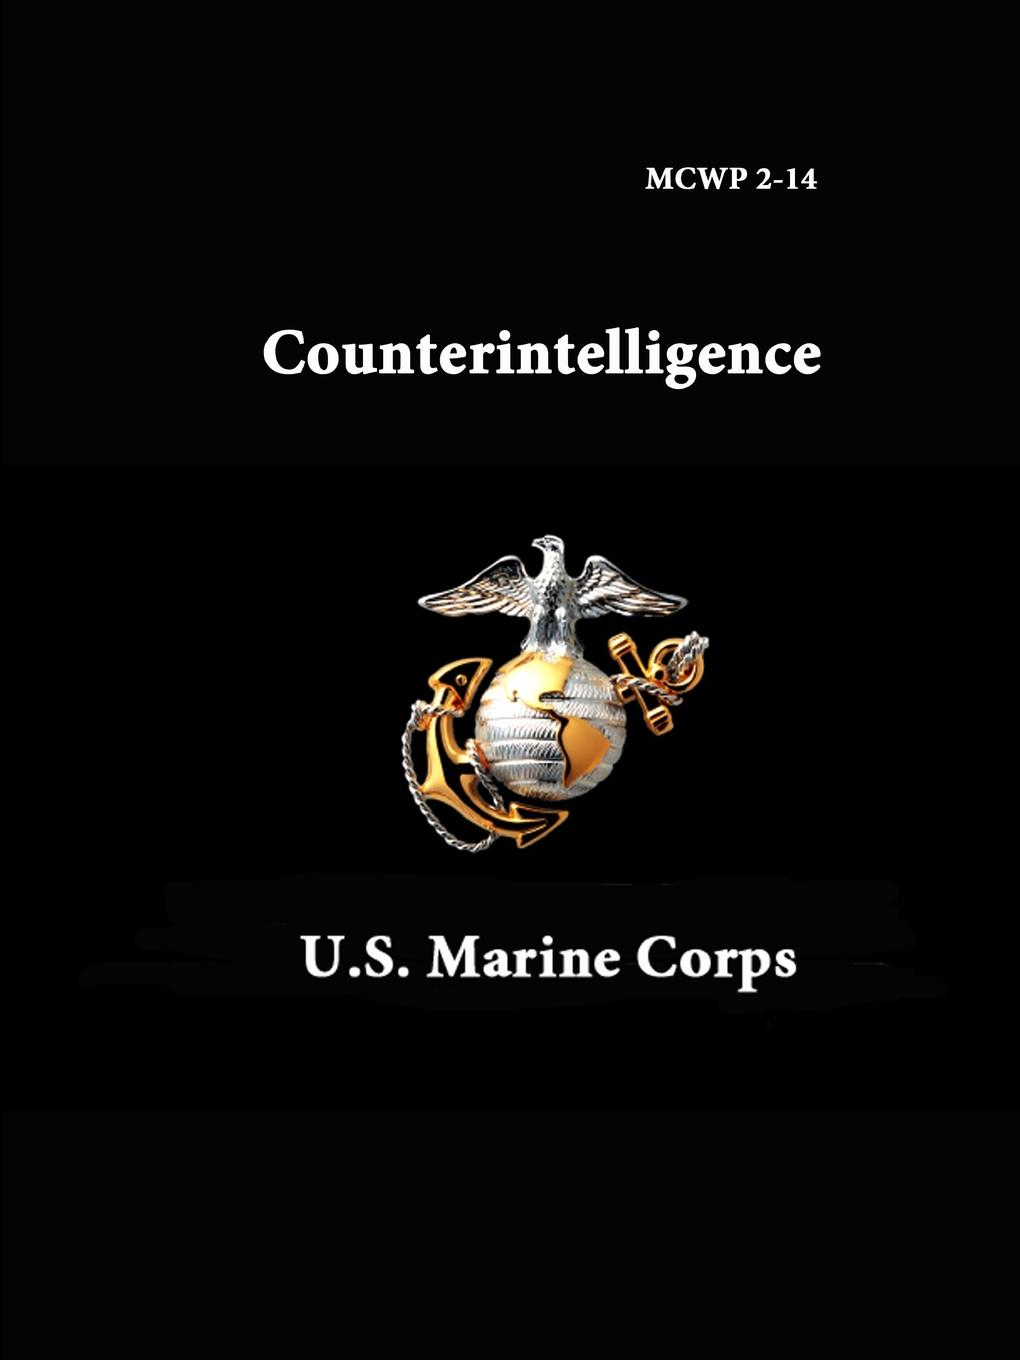 U.S. Marine Corps MCWP 2-14 - Counterintelligence effectiveness of information technology on the operations of saccos